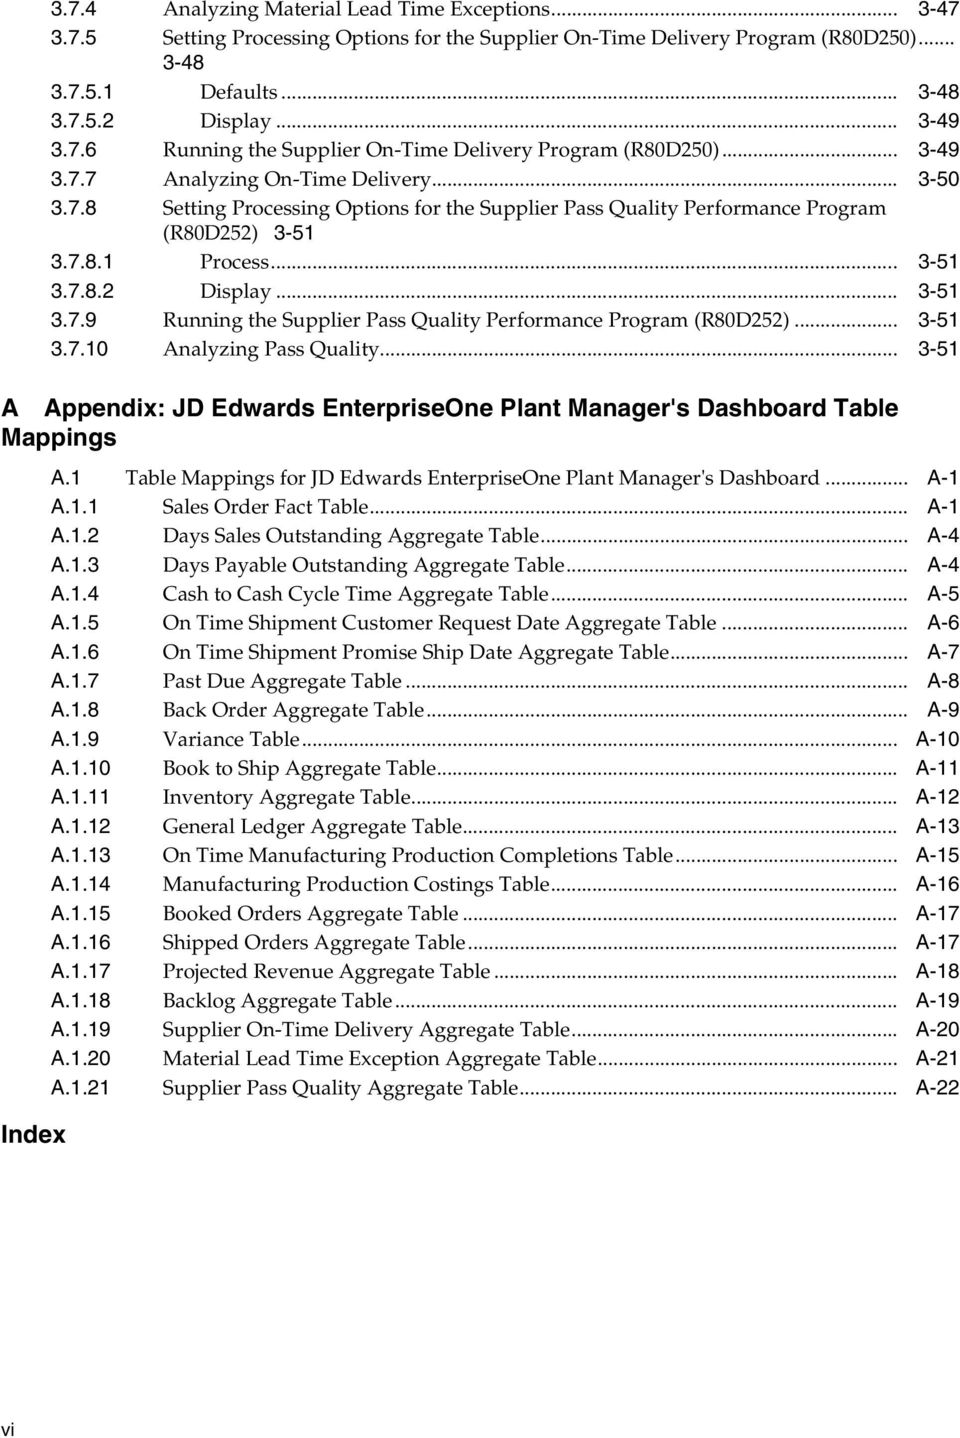 .. 3-51 3.7.10 Analyzing Pass Quality... 3-51 A Appendix: JD Edwards EnterpriseOne Plant Manager's Dashboard Table Mappings Index A.